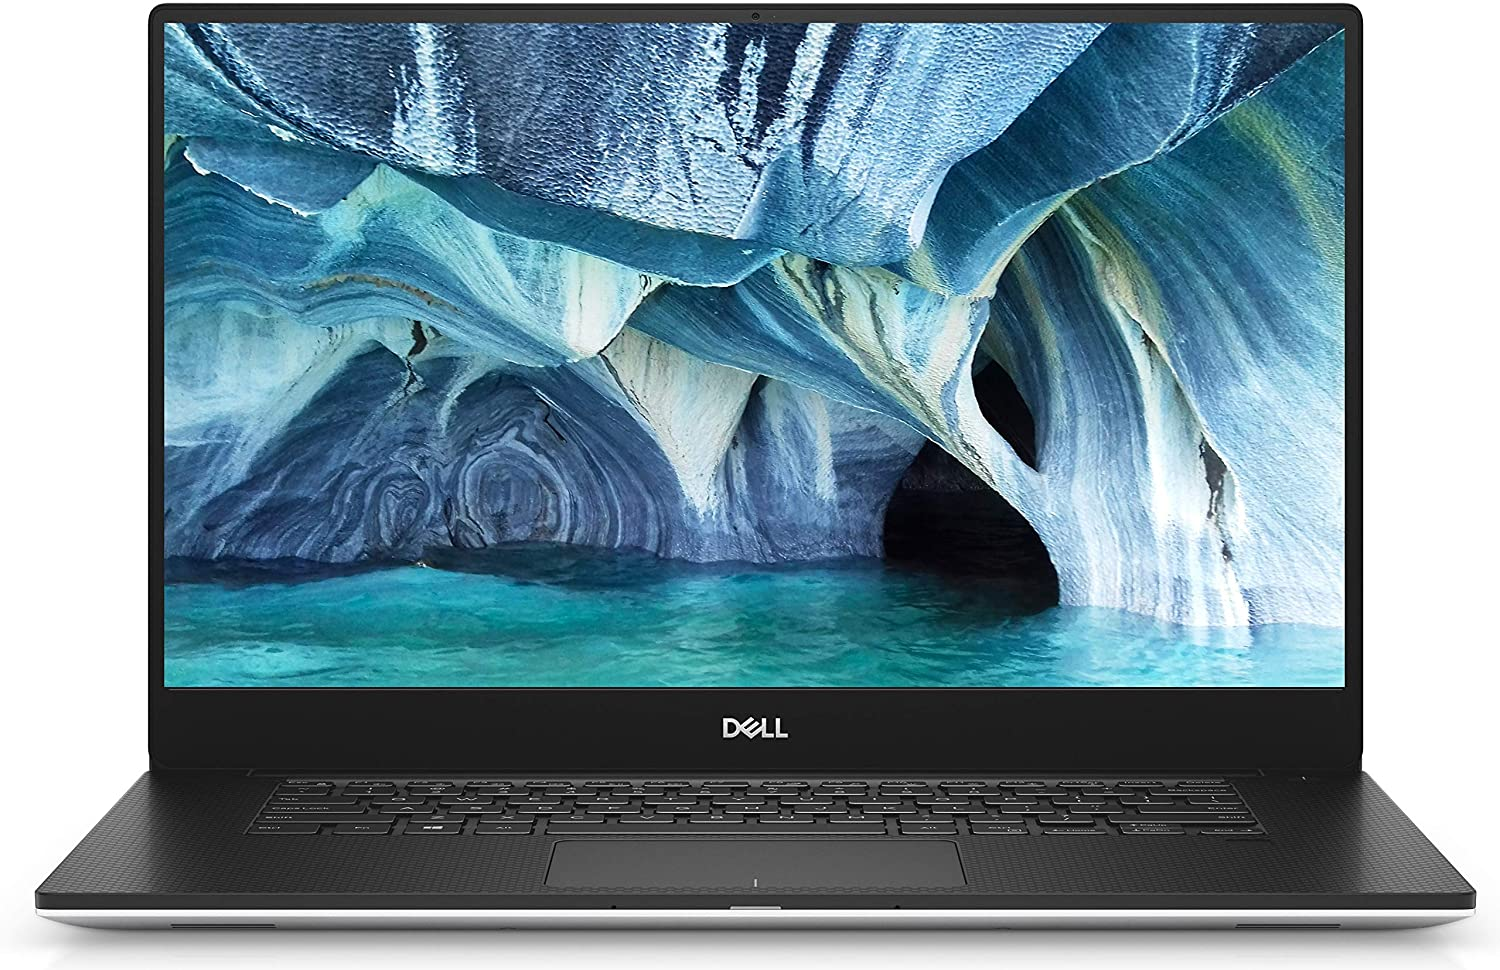 Dell XPS 15 9570 8th Generation